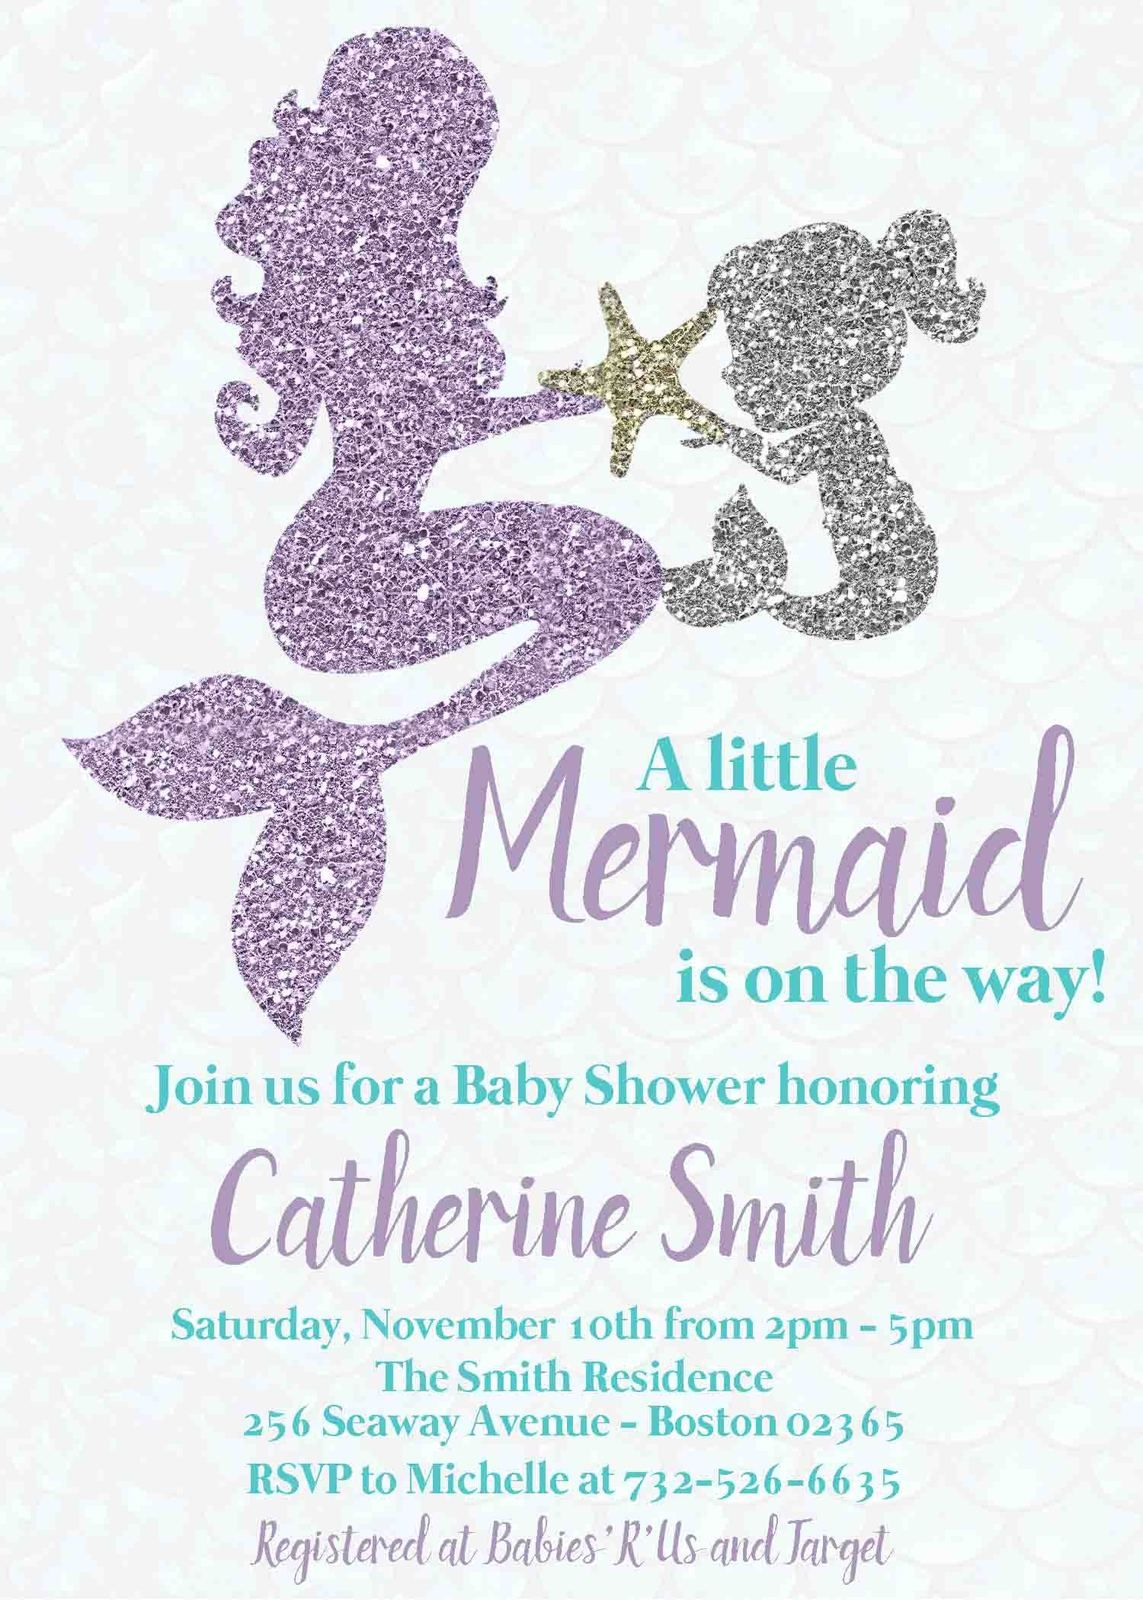 Mermaid Baby Shower Invitation Mother Baby Personalized Teal Lavender